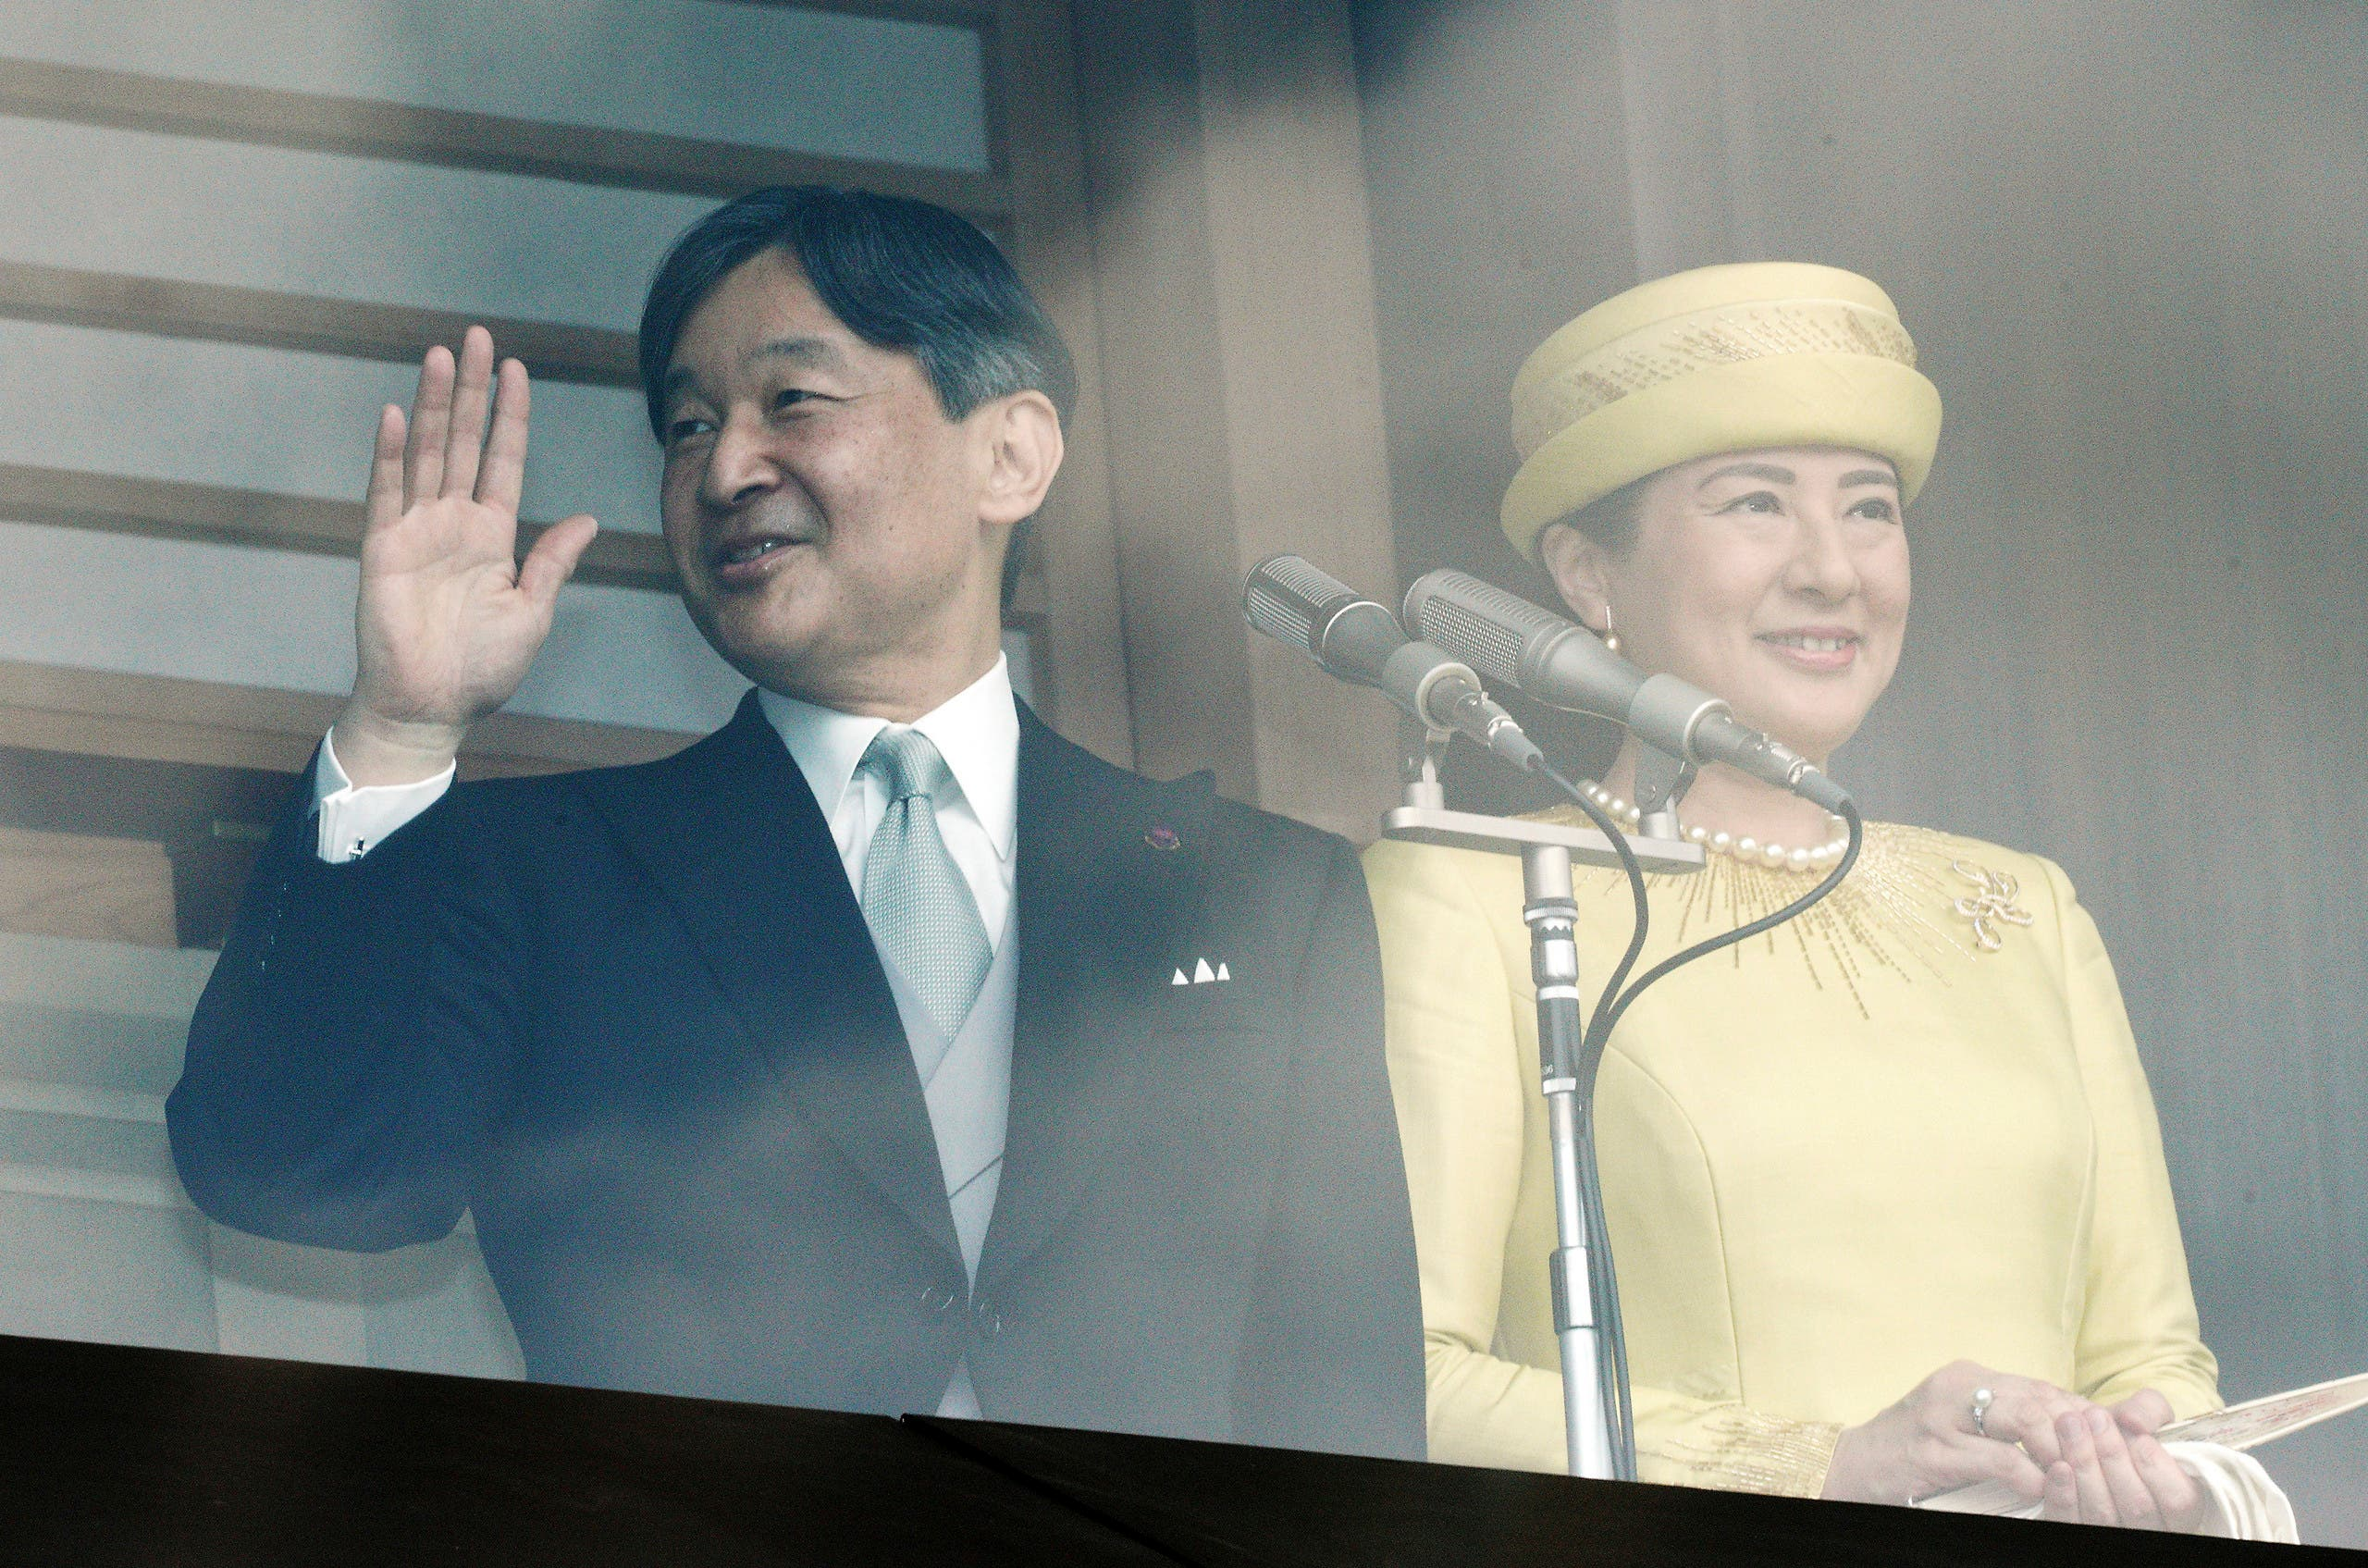 Japan's new Emperor Naruhito, left, waves with Empress Masako, right, to well-wishers from the balcony during his first public appearance with his imperial families at Imperial Palace Saturday (AP)